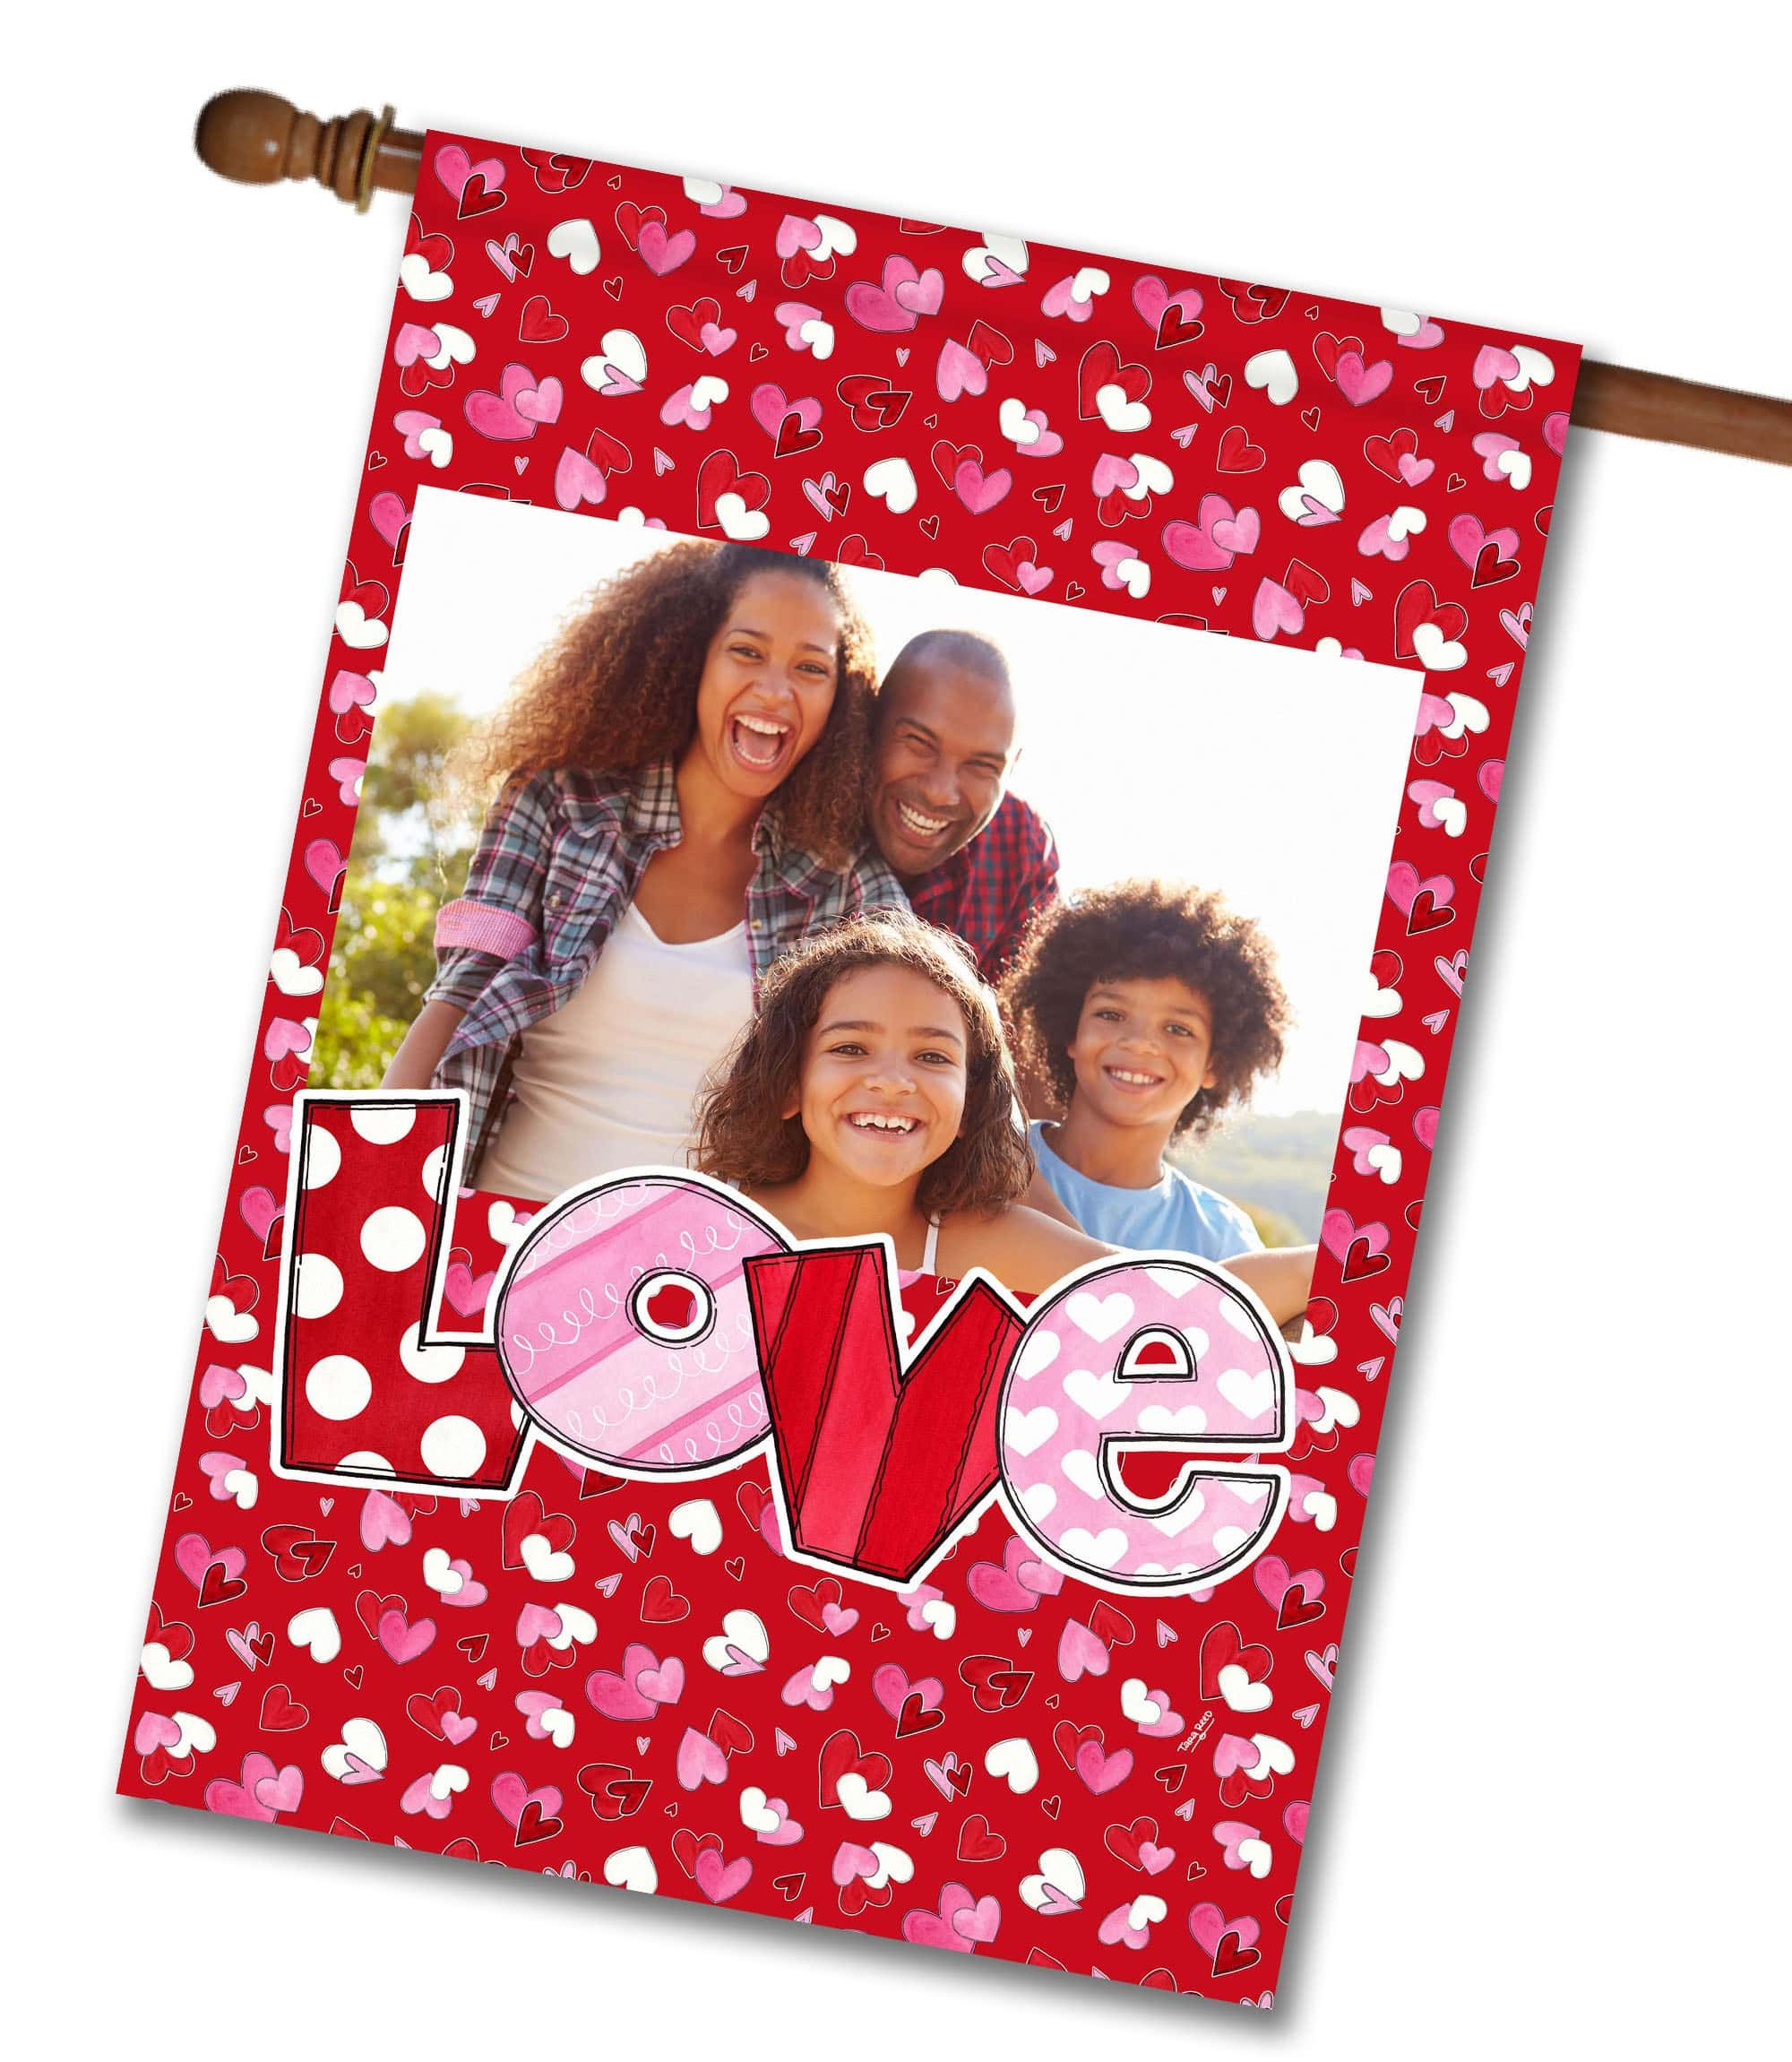 Love horizontal frame photo house flag 28 x 40 flag stand flag size x flag stand sold separately vibrant colors printed on a polycotton outdoor quality fabric digitally printed on both sides of the fabric jeuxipadfo Gallery